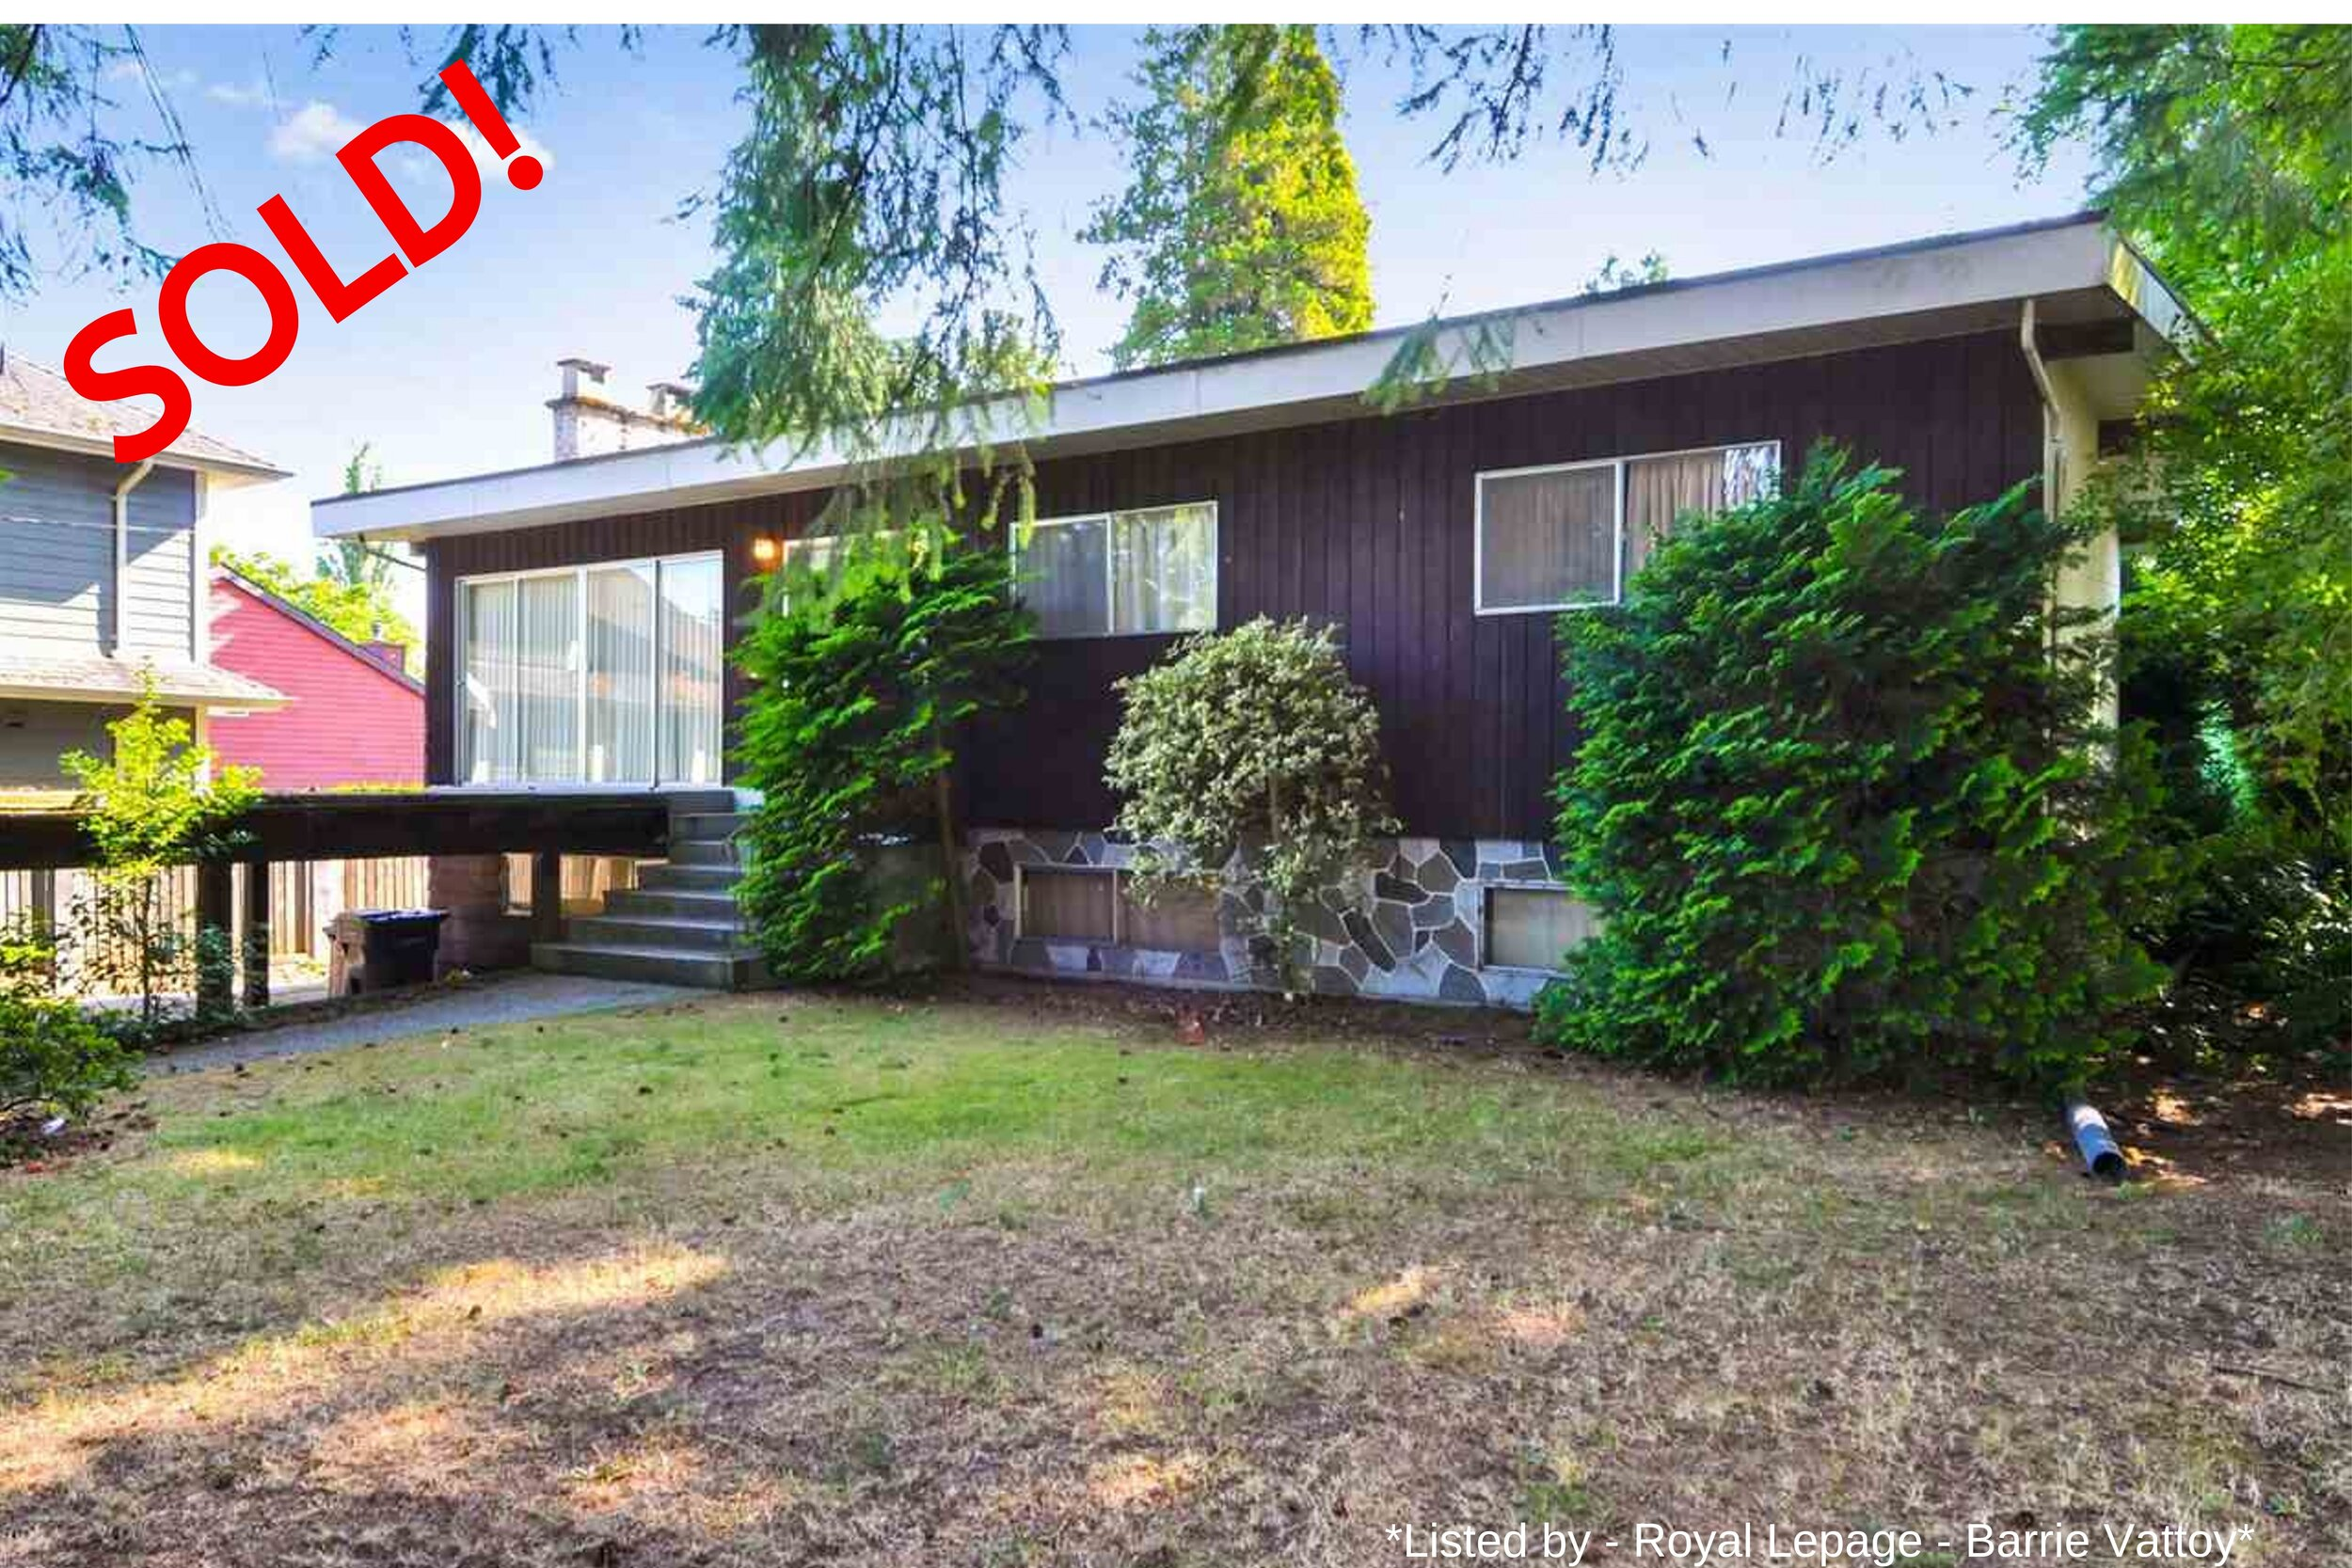 953 LILLIAN STREET SOLD FOR:  $1,300,000   3 BED | 1 BATH | 2366 SQ FT